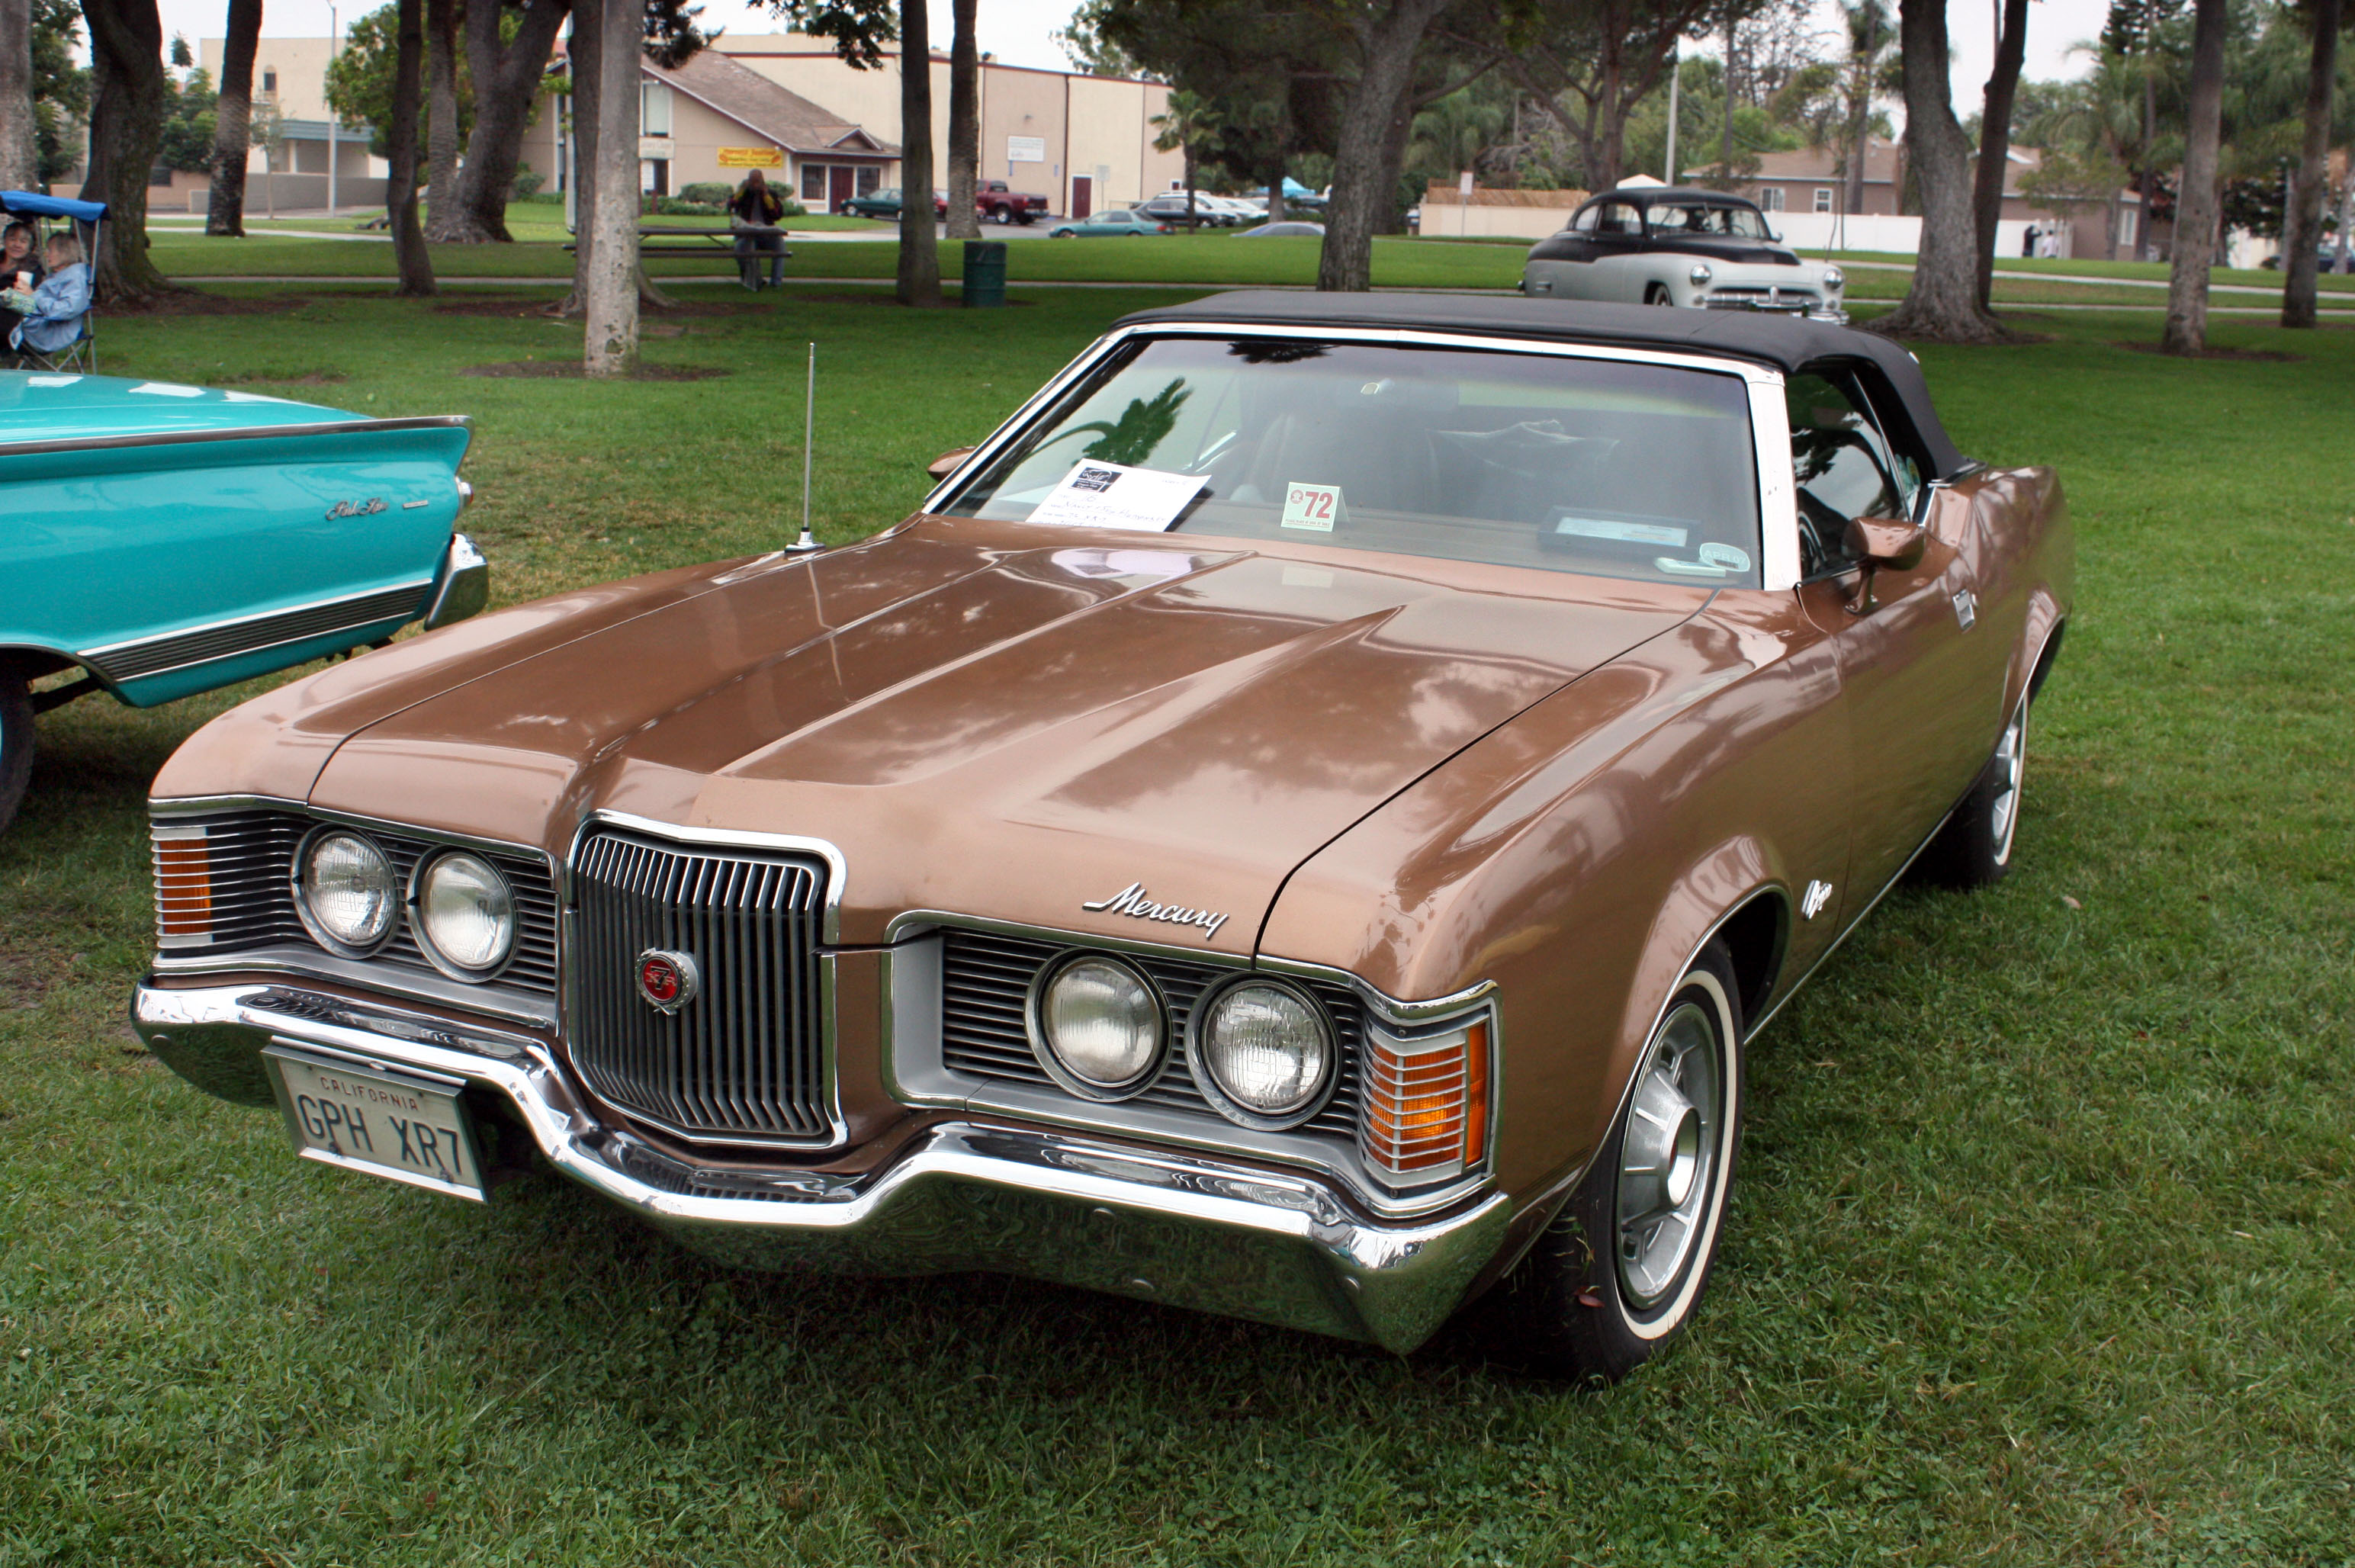 1972 mercury cougar images pictures and videos. Black Bedroom Furniture Sets. Home Design Ideas